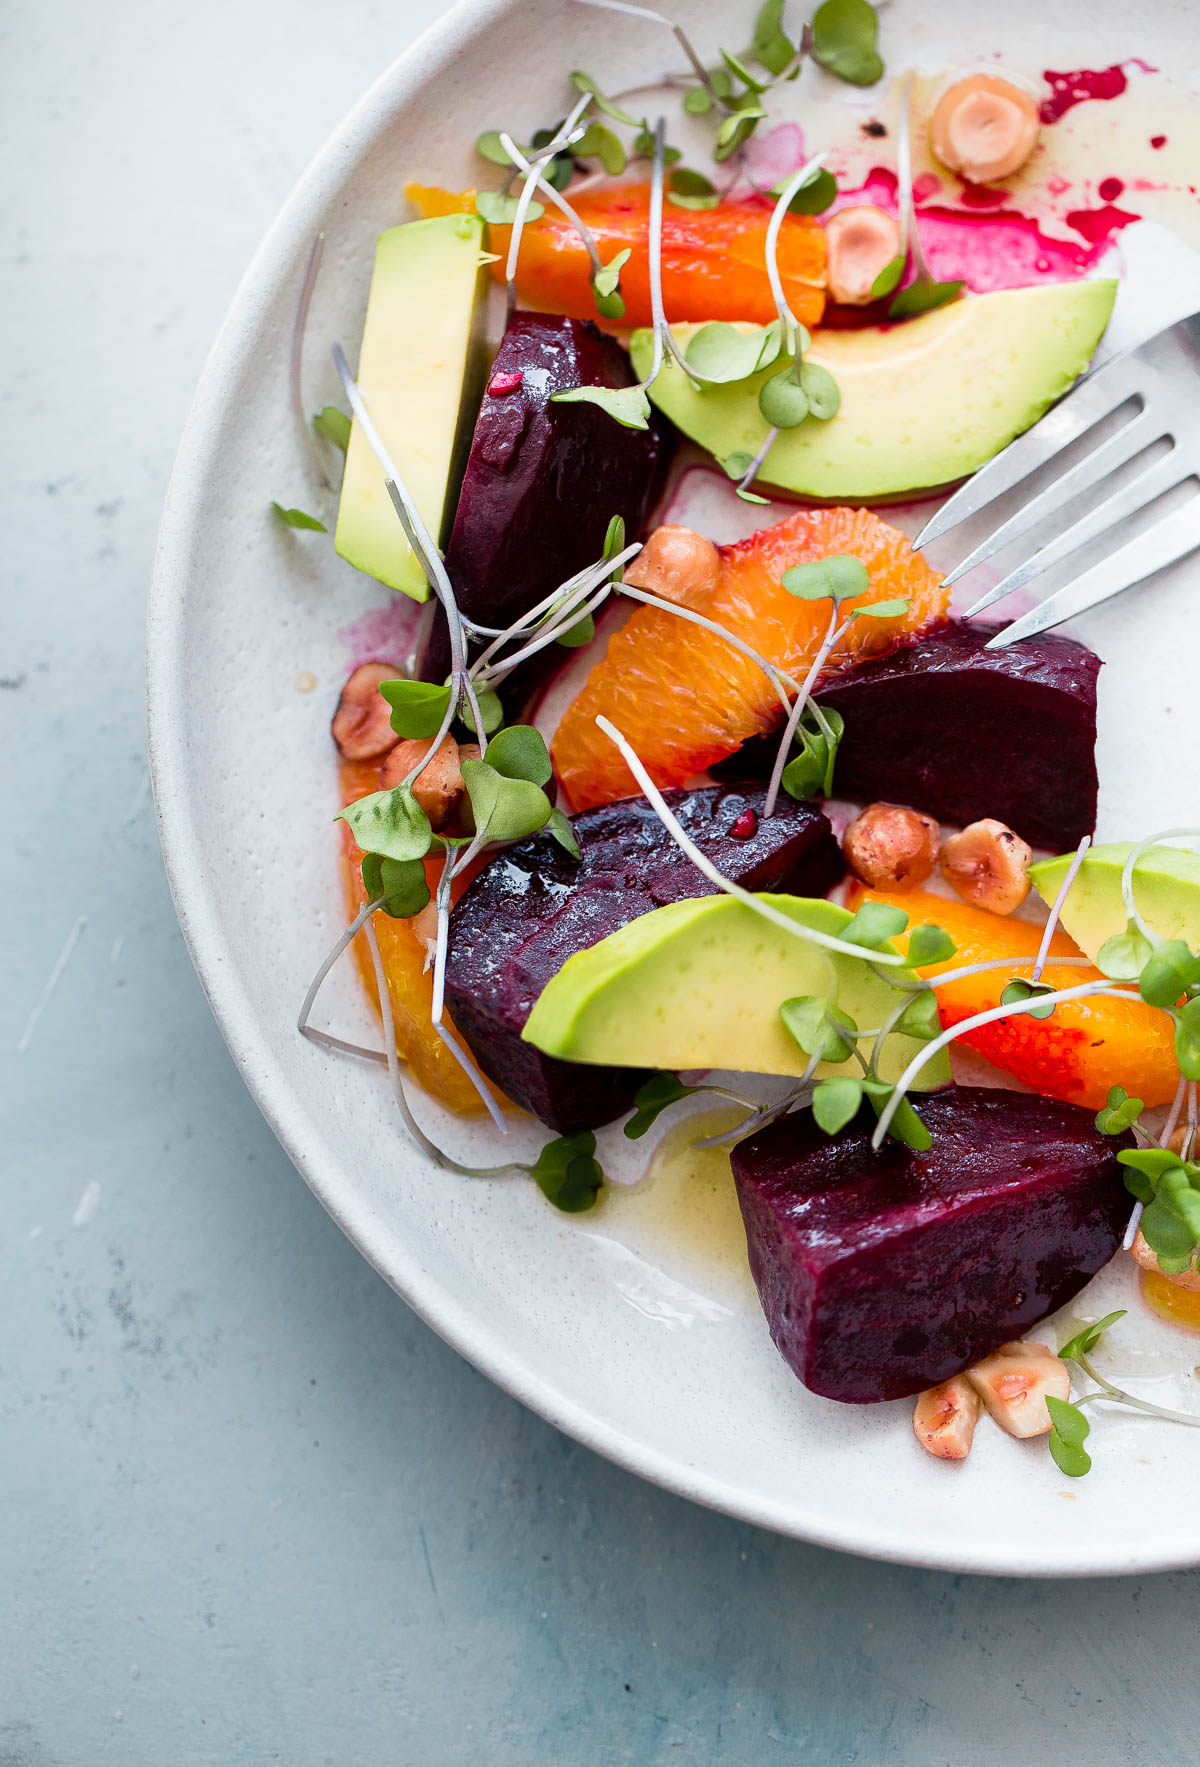 Roasted Beet Salad with Citrus and Avocado